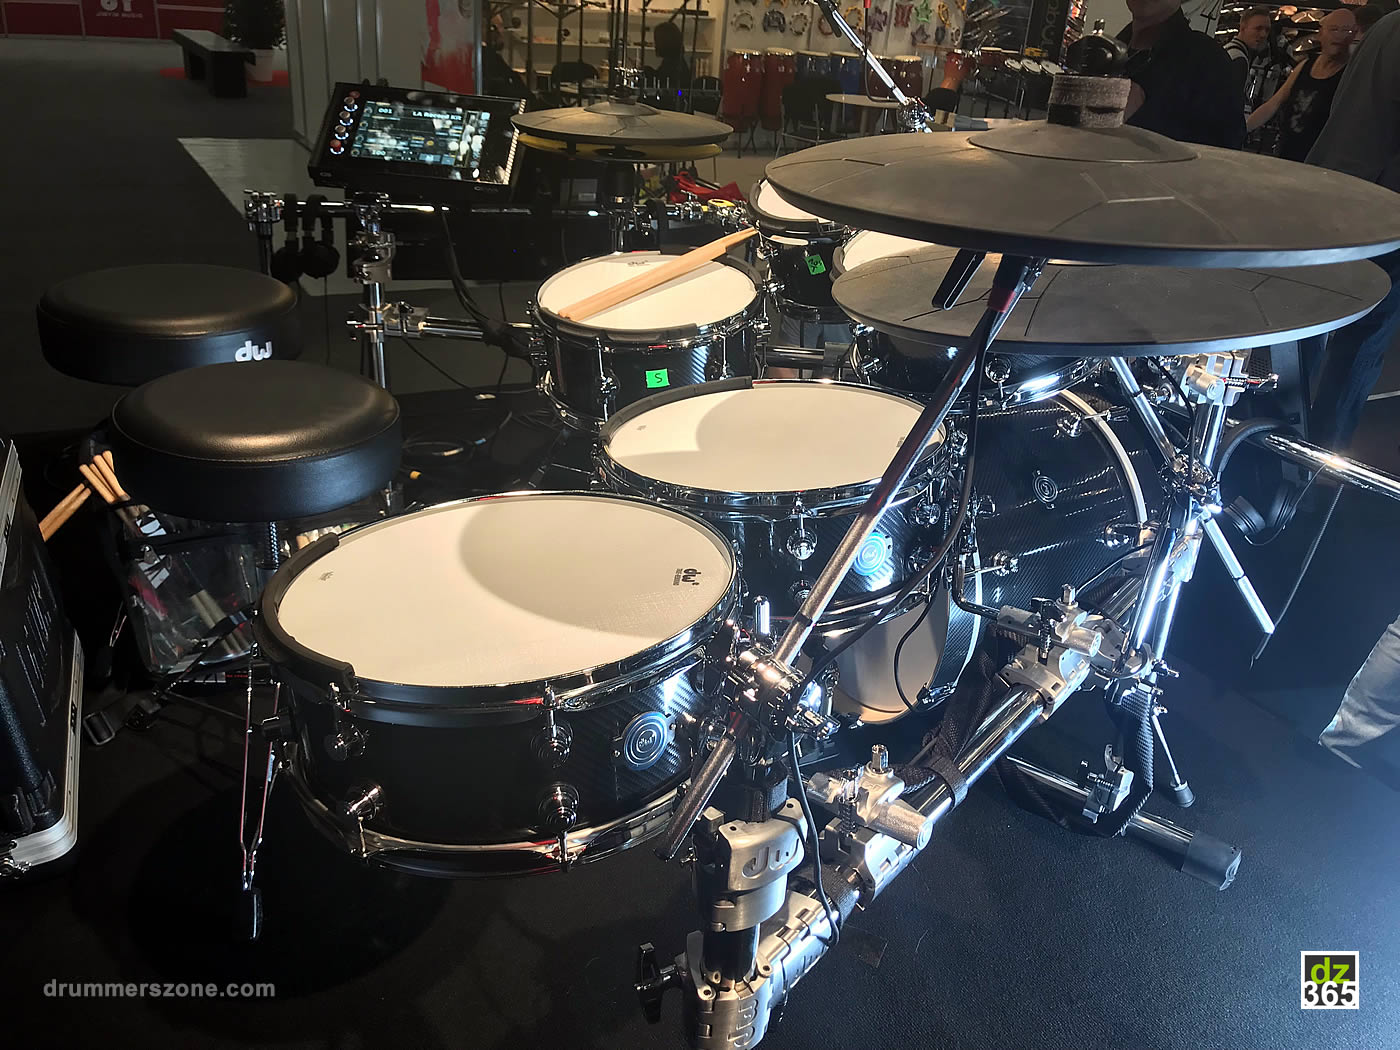 GEWA Drum Workstation G9